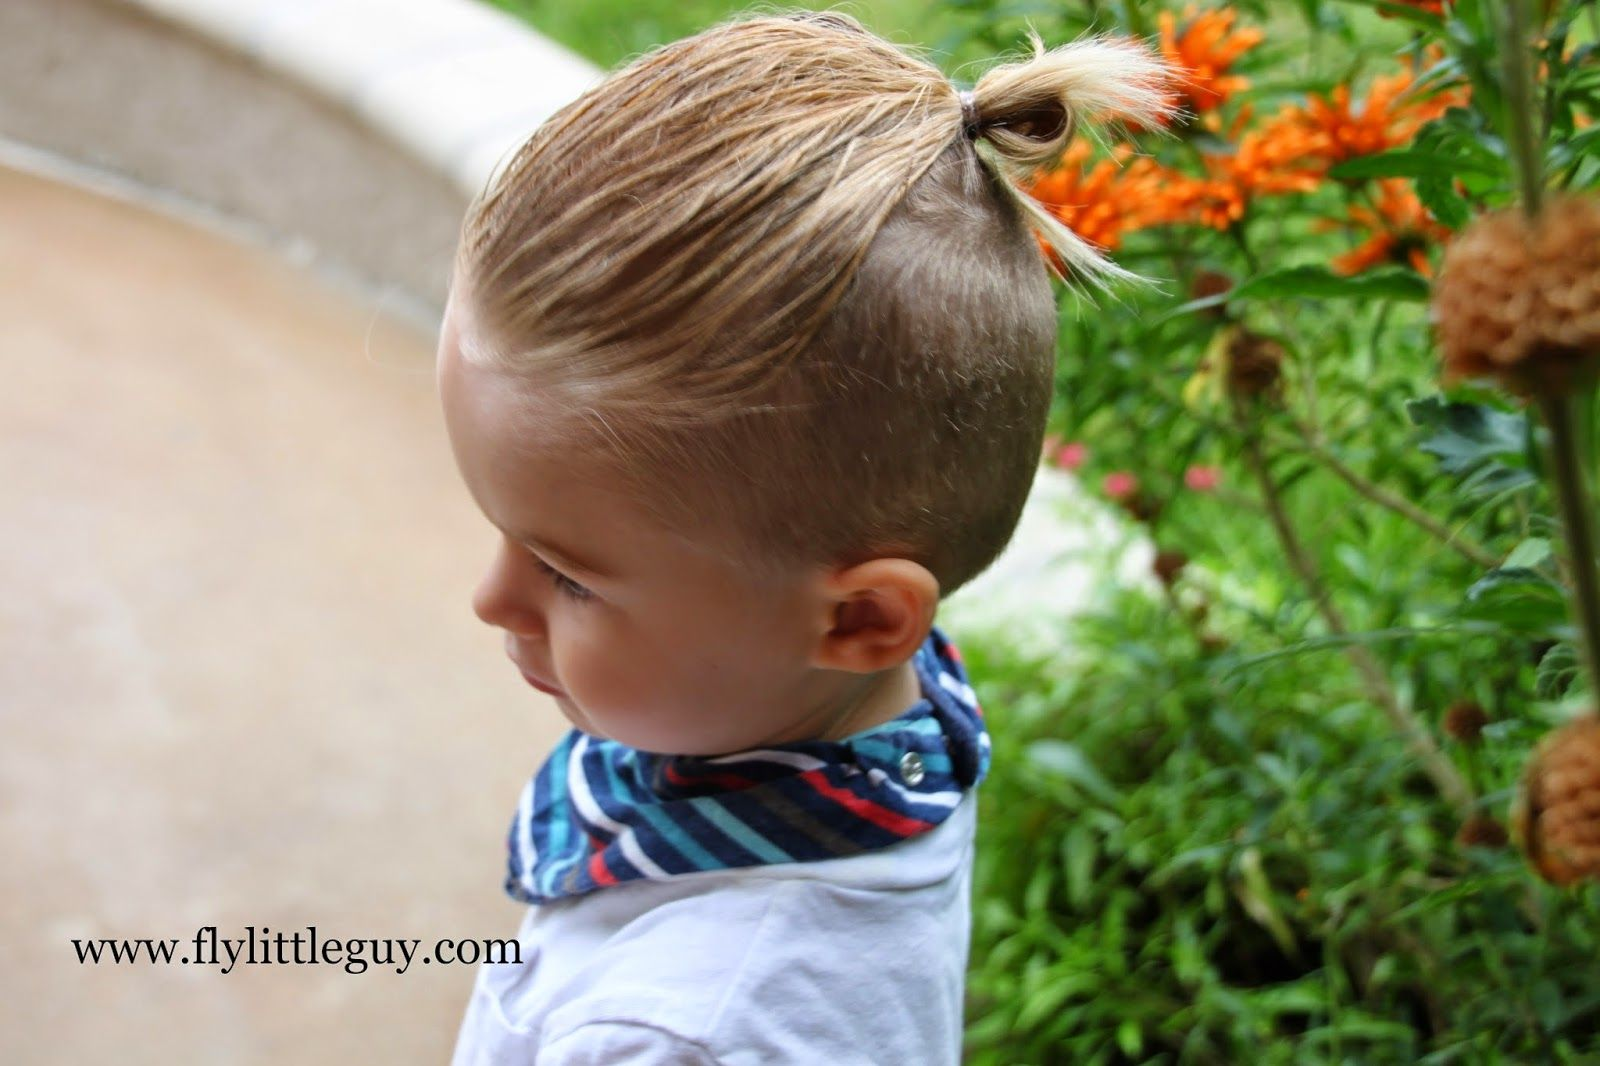 Fly Little Guy Boys Hair Tutorial The Man Bun Fly Little Guy